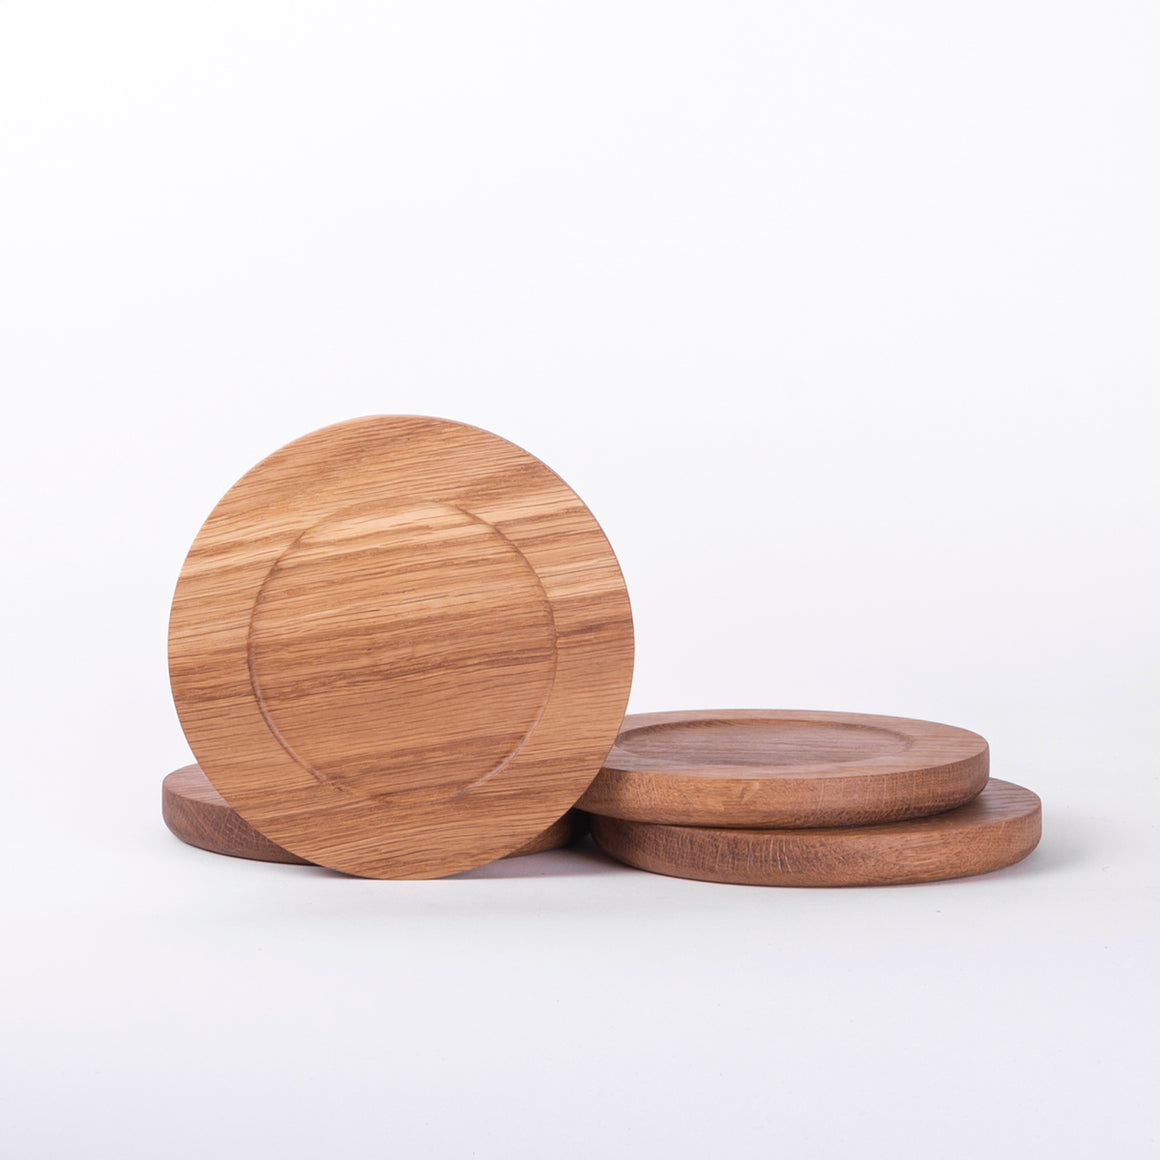 Wooden Coasters, Set of 2